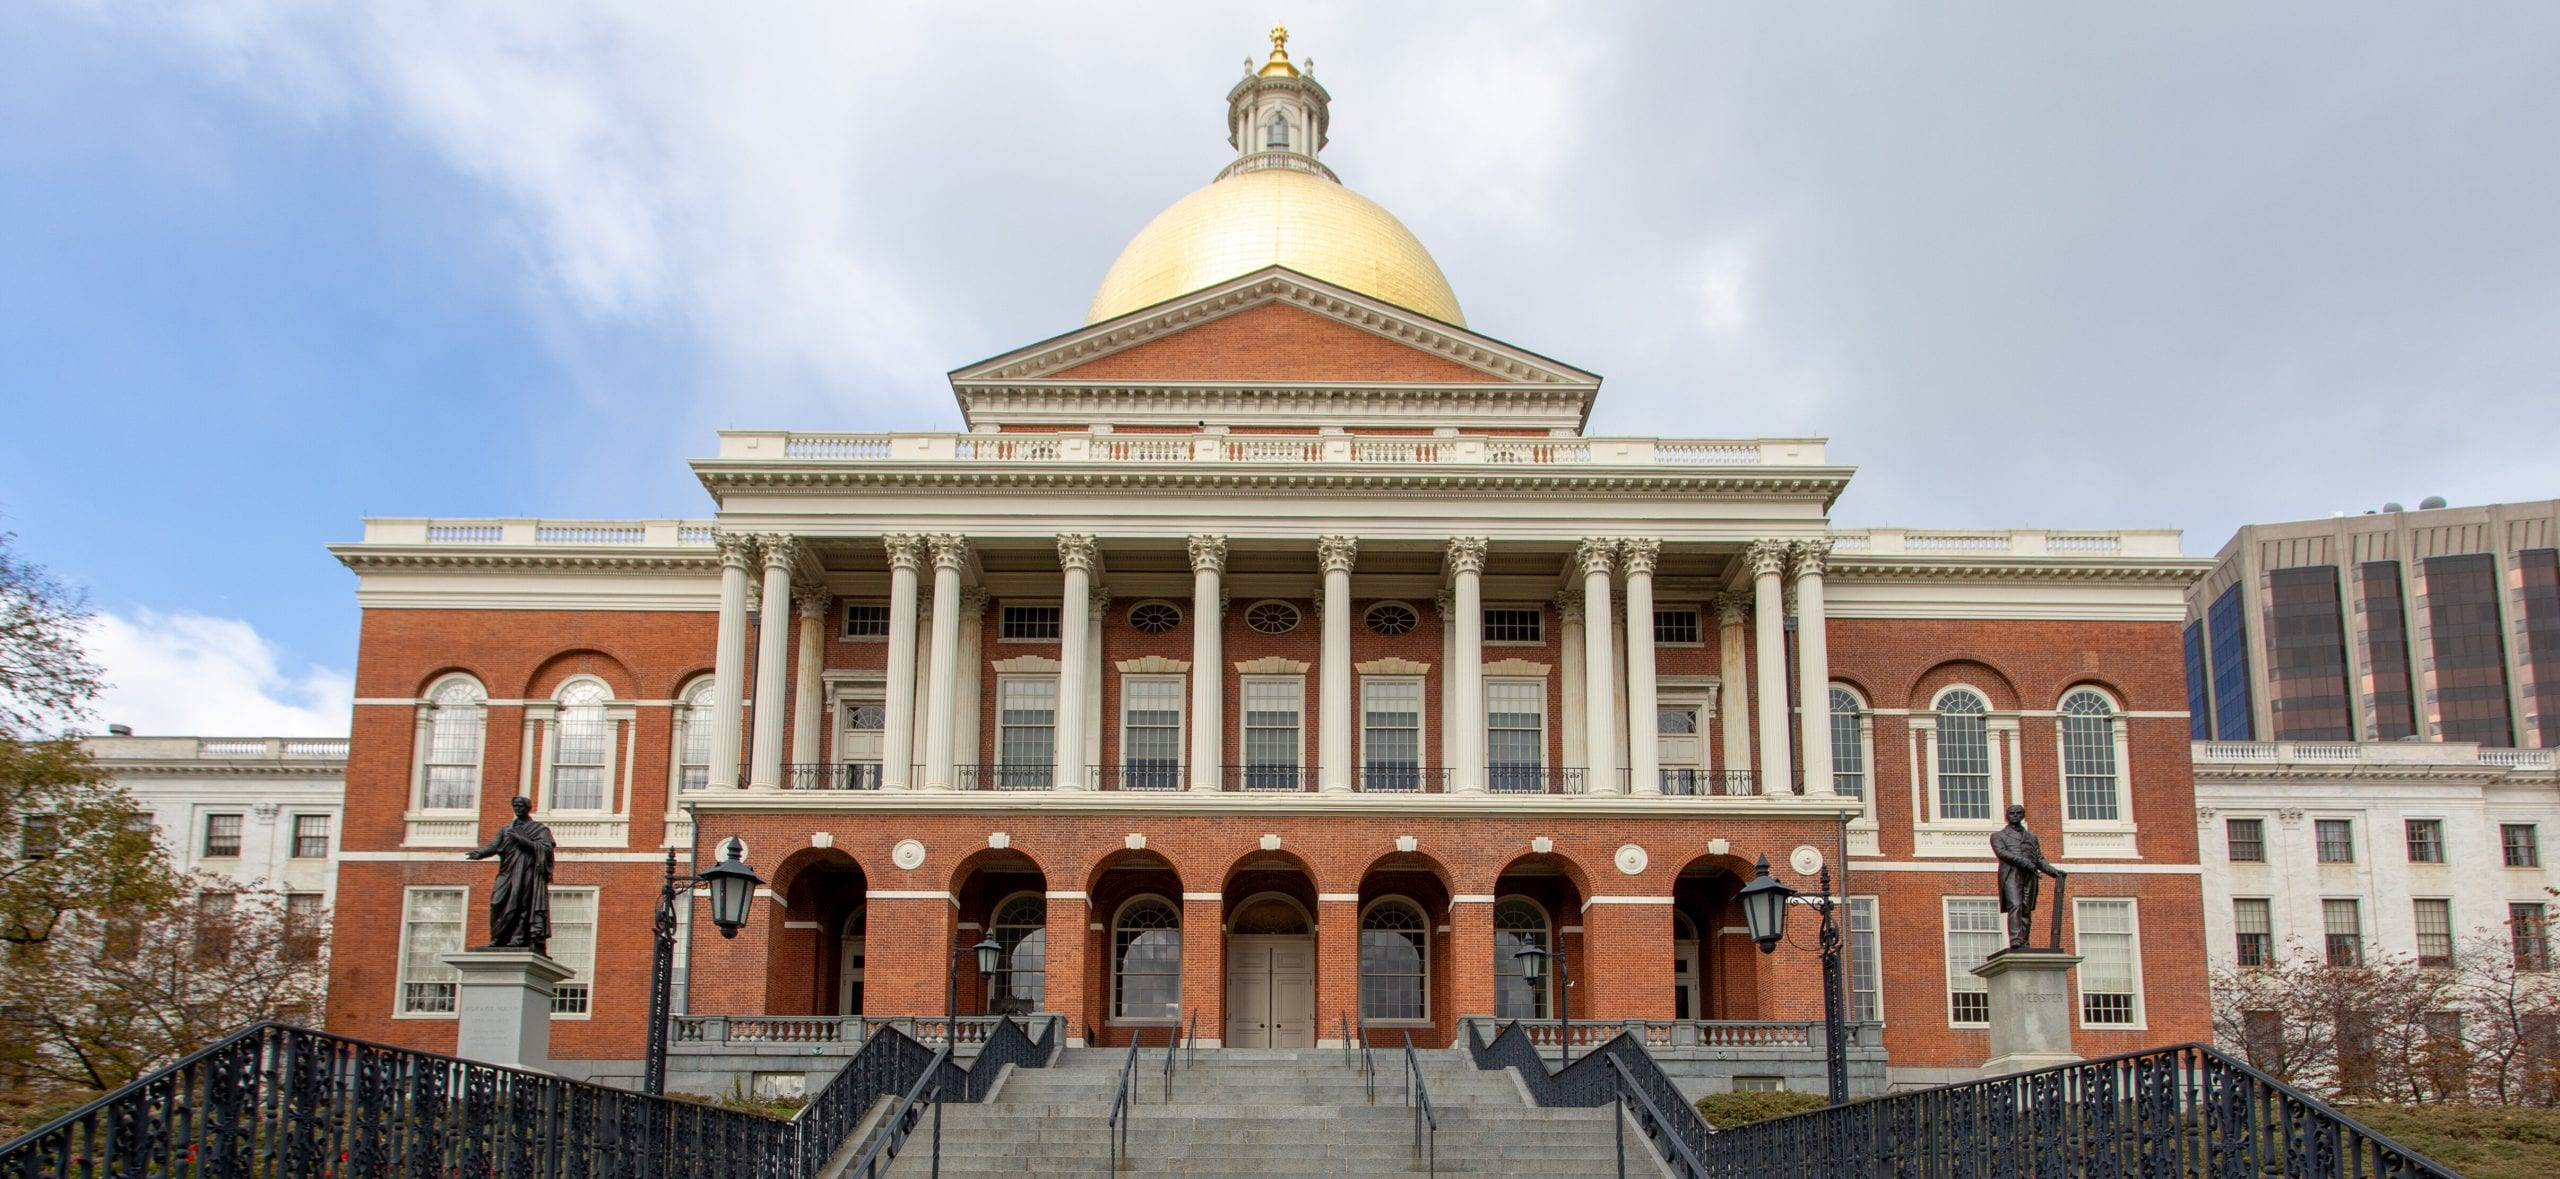 photo of the Massachusetts State House